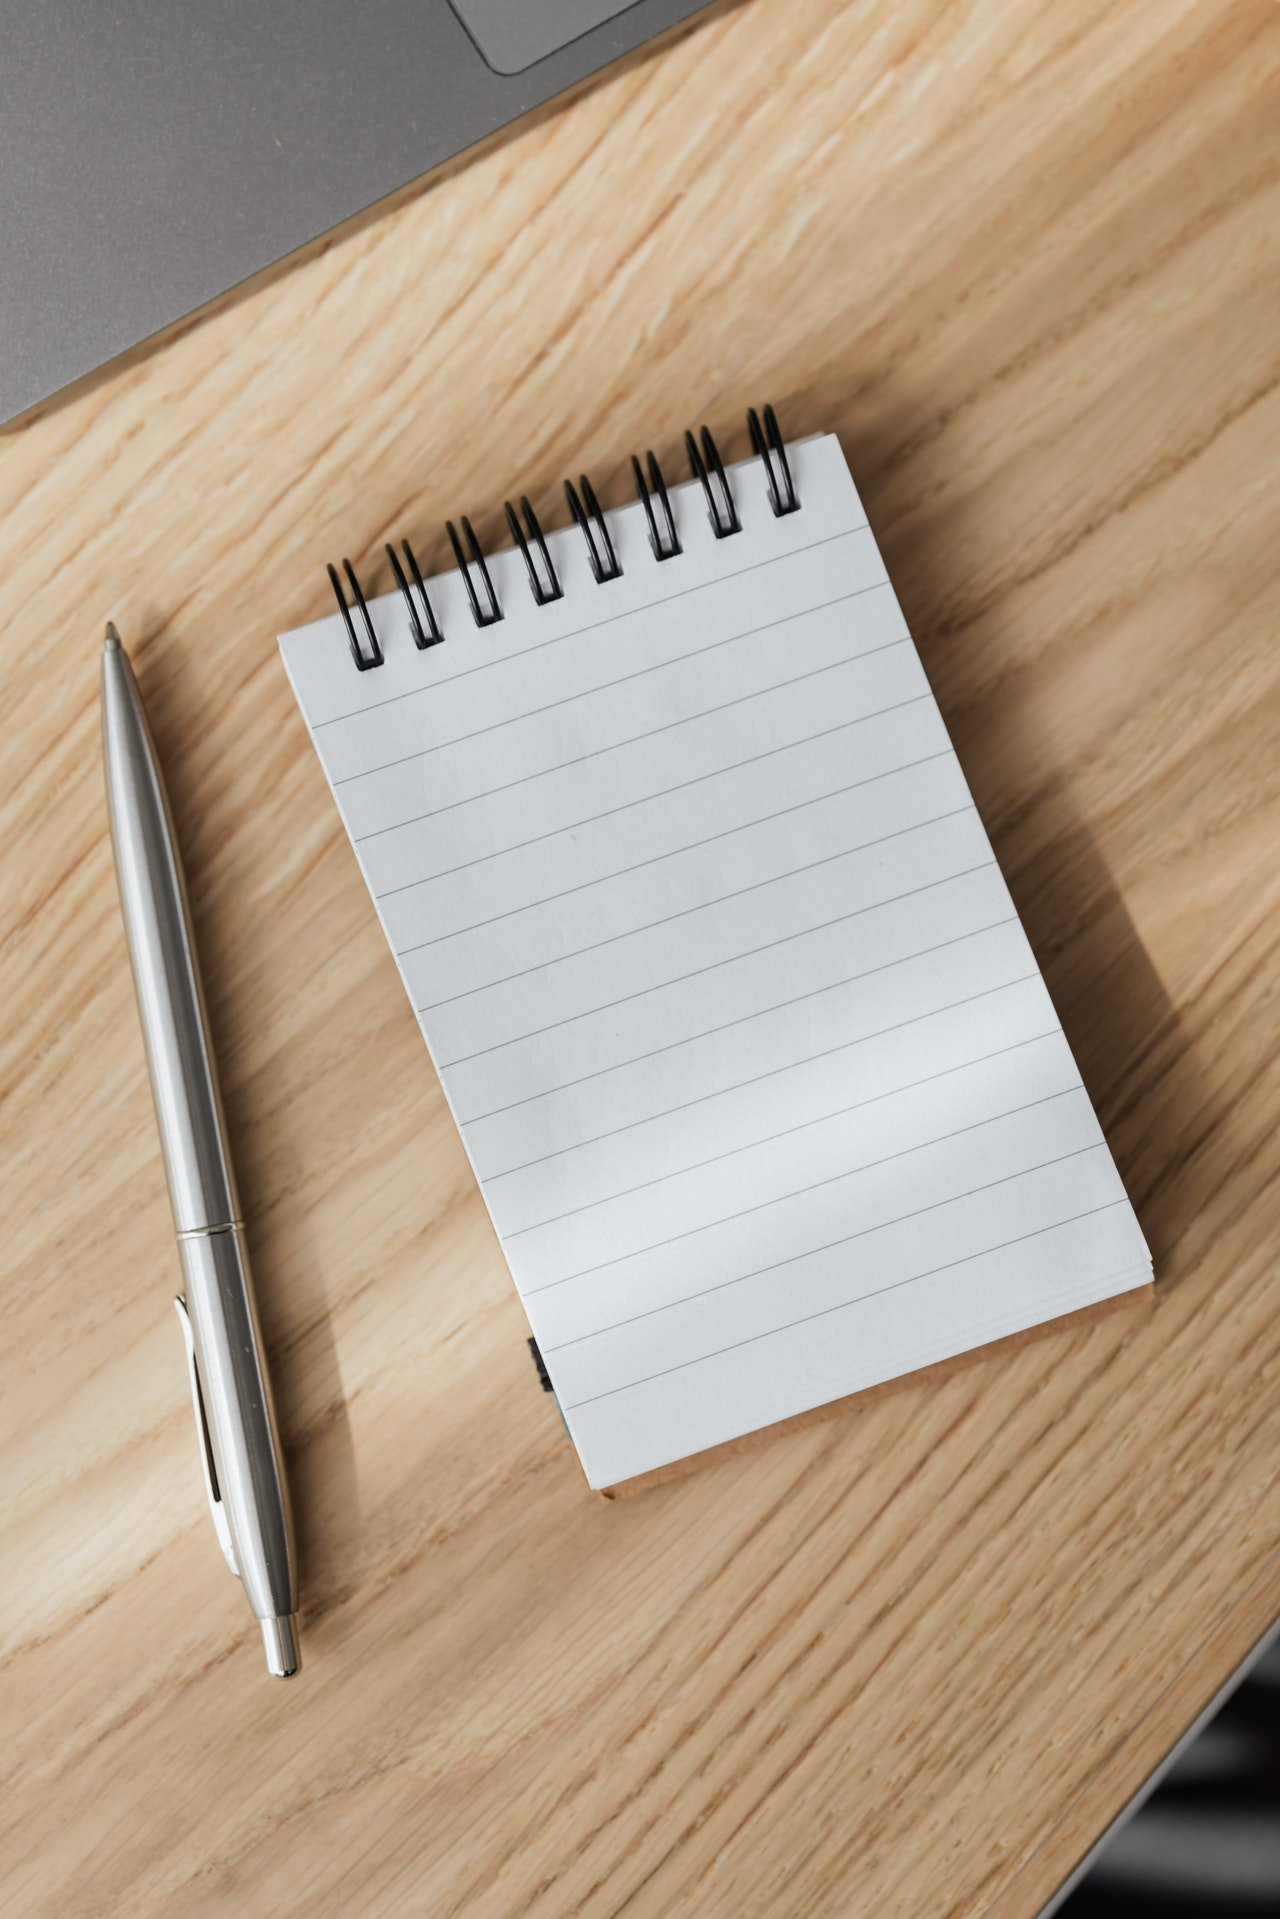 Notebook with a silver pen | Source: Pexels